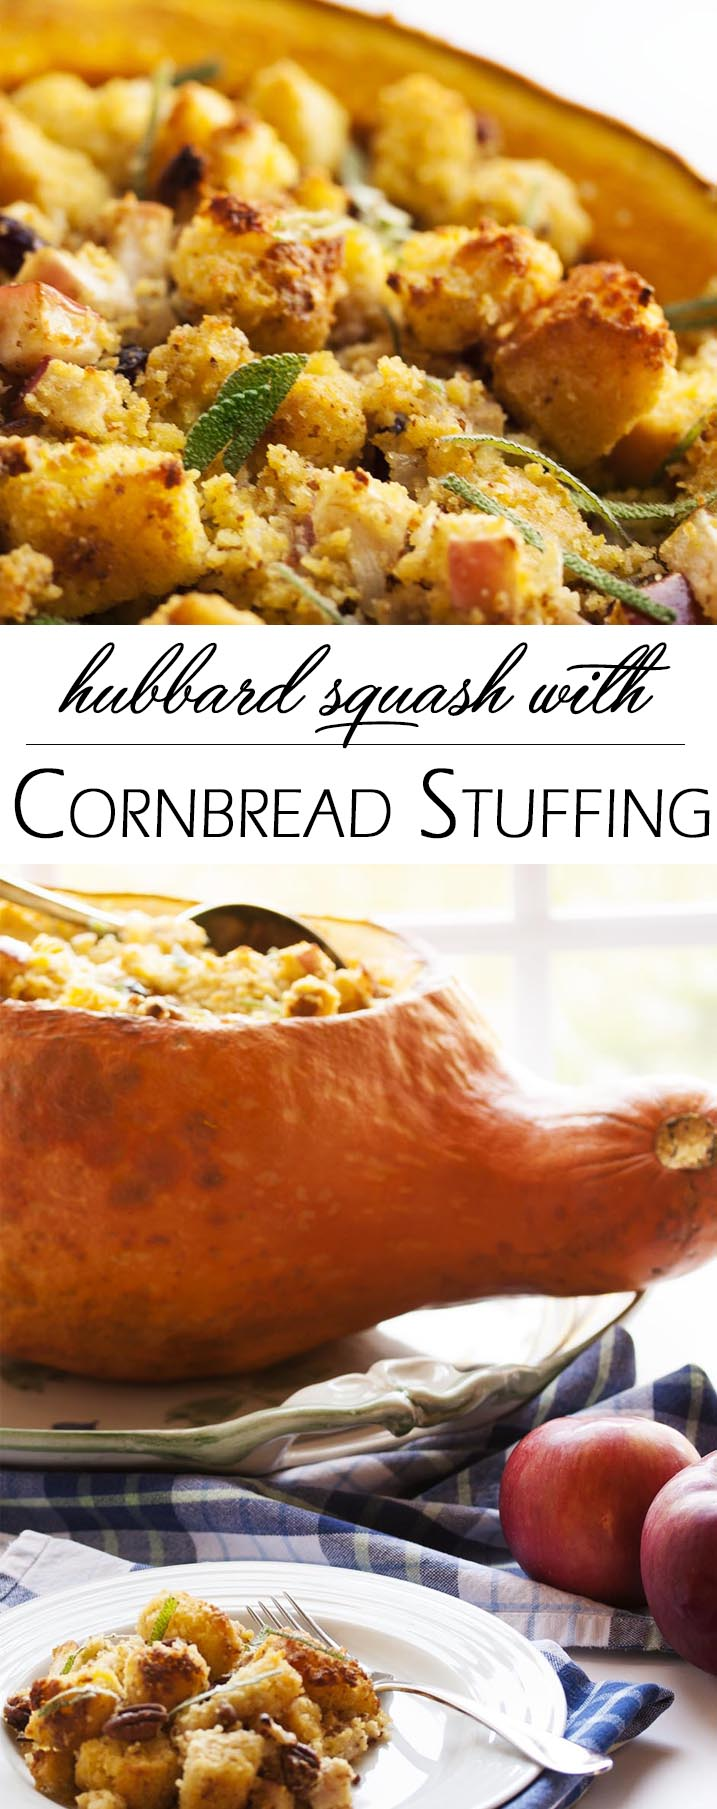 ... ? Hubbard Squash with Cornbread Stuffing - Just a Little Bit of Bacon